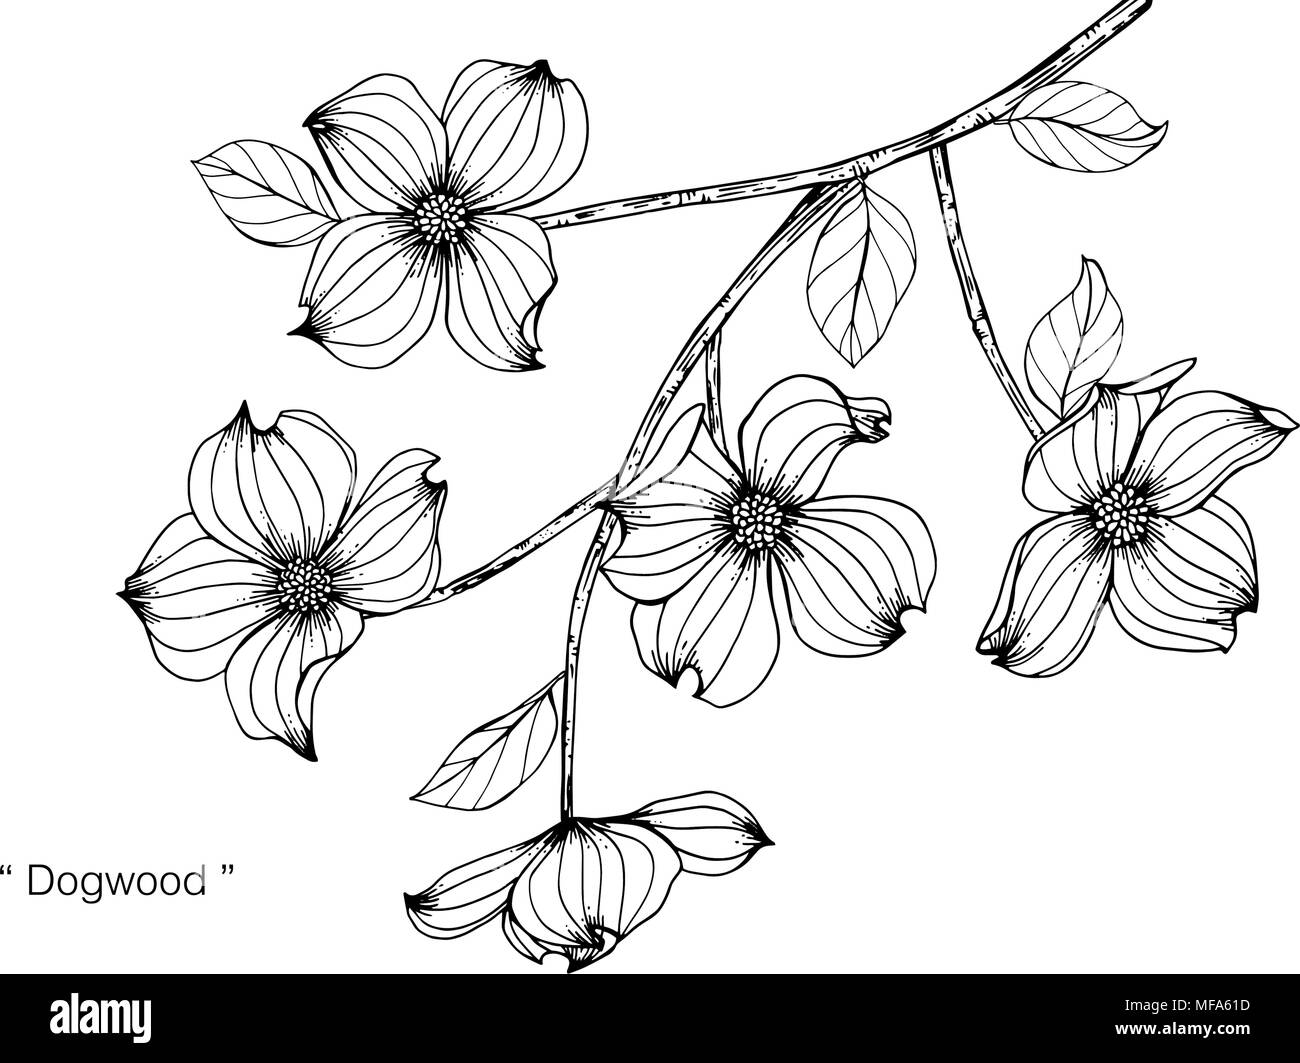 Dogwood Flower Drawing Illustration Black And White With Line Art